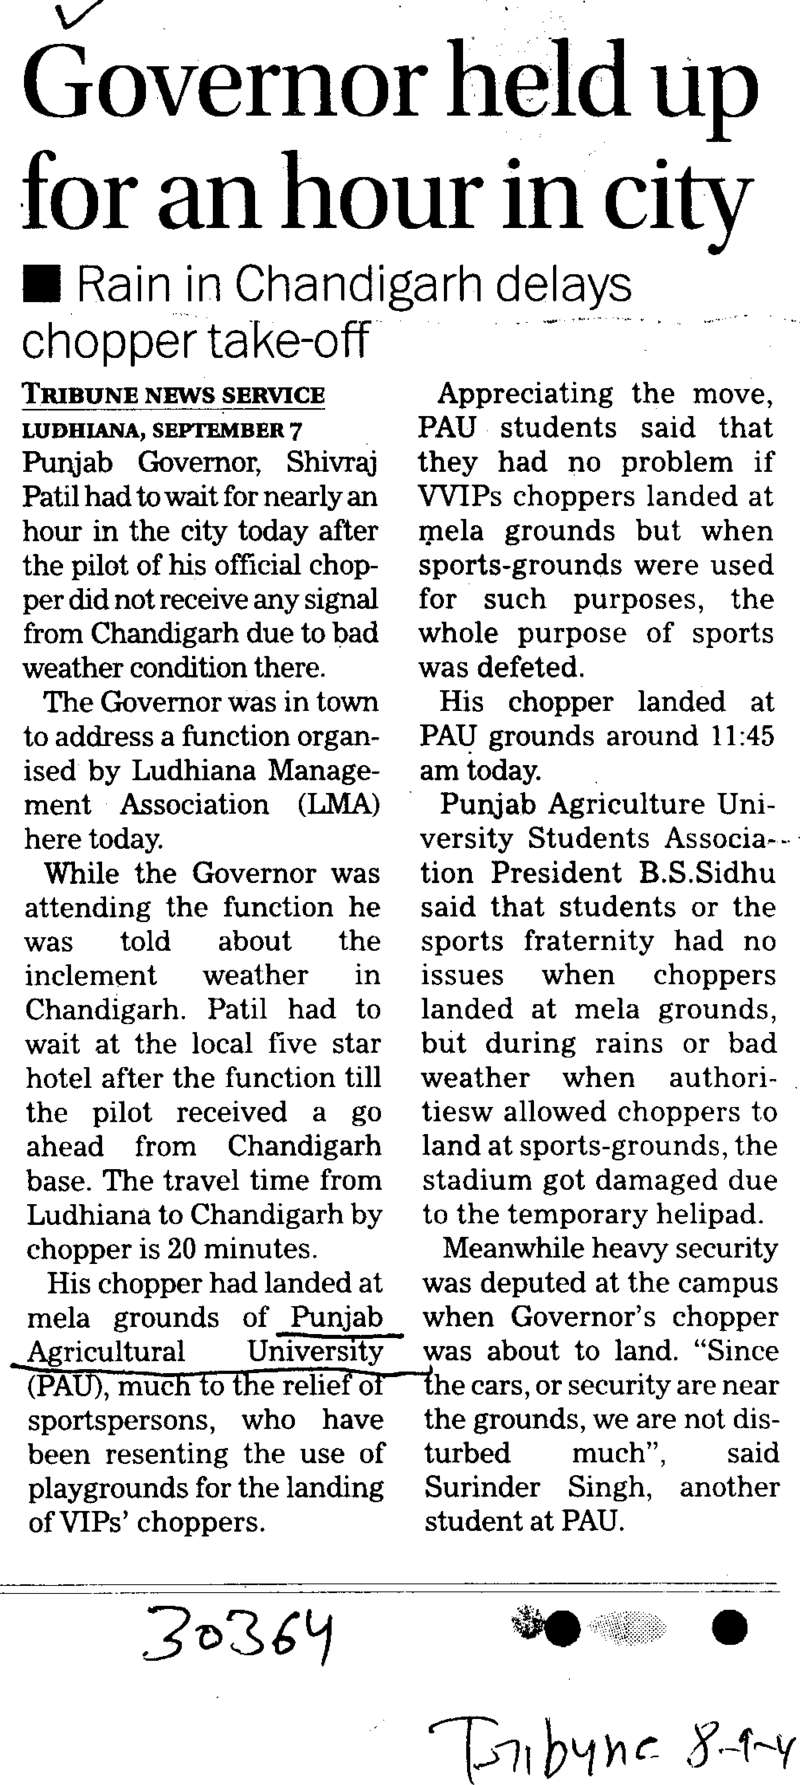 Governor held up for an hour in city (Punjab Agricultural University PAU)